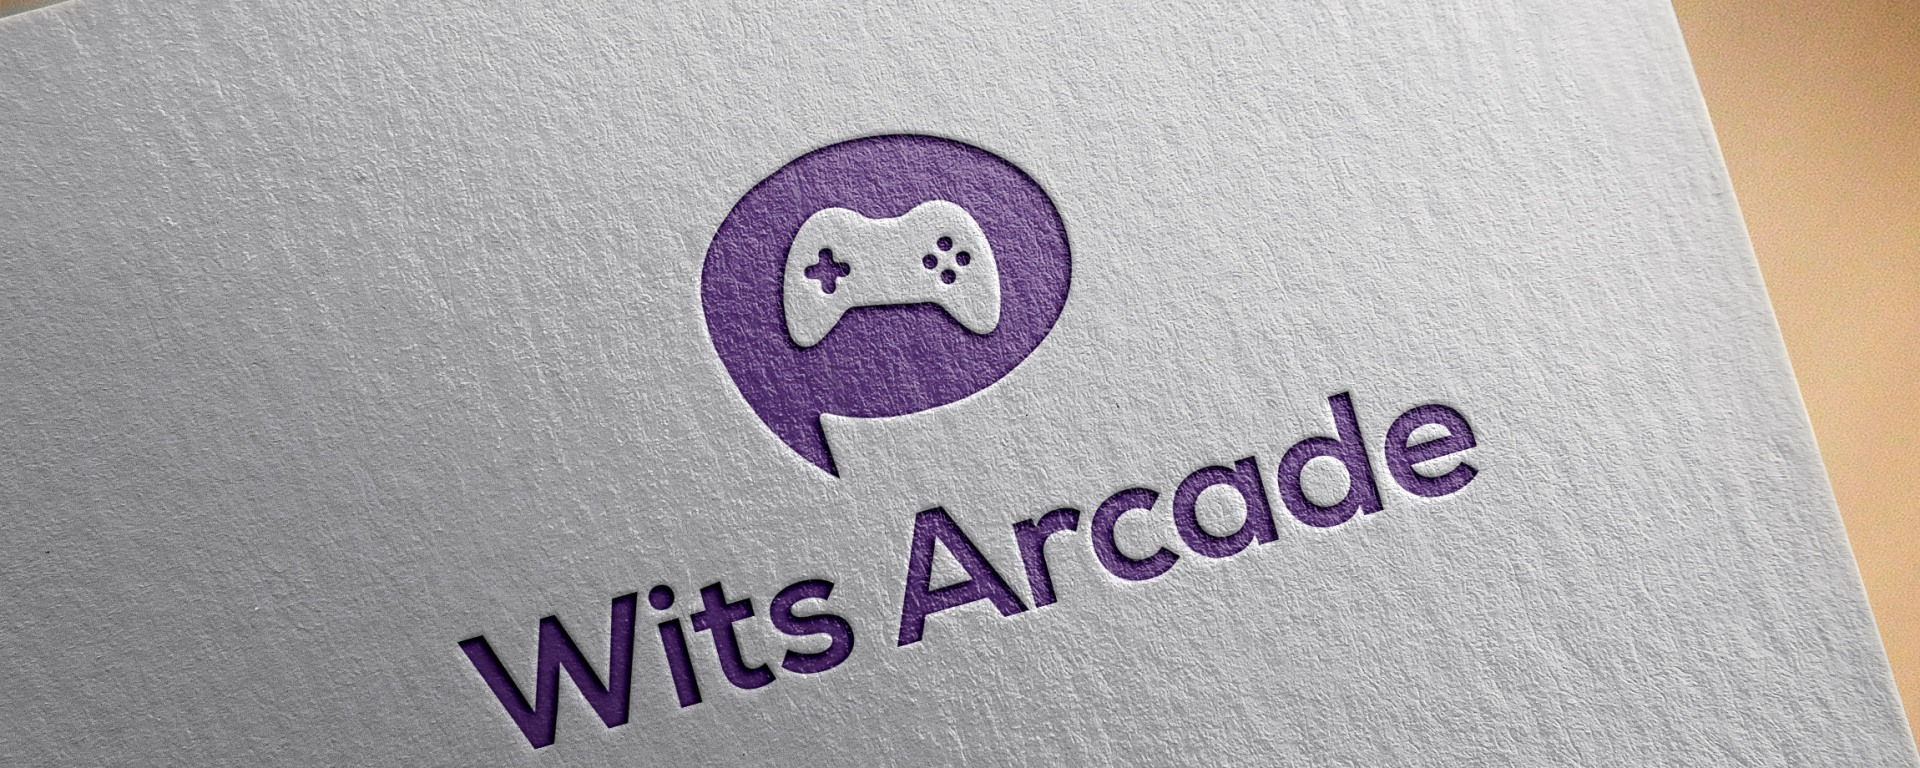 Wits Arcaade logo